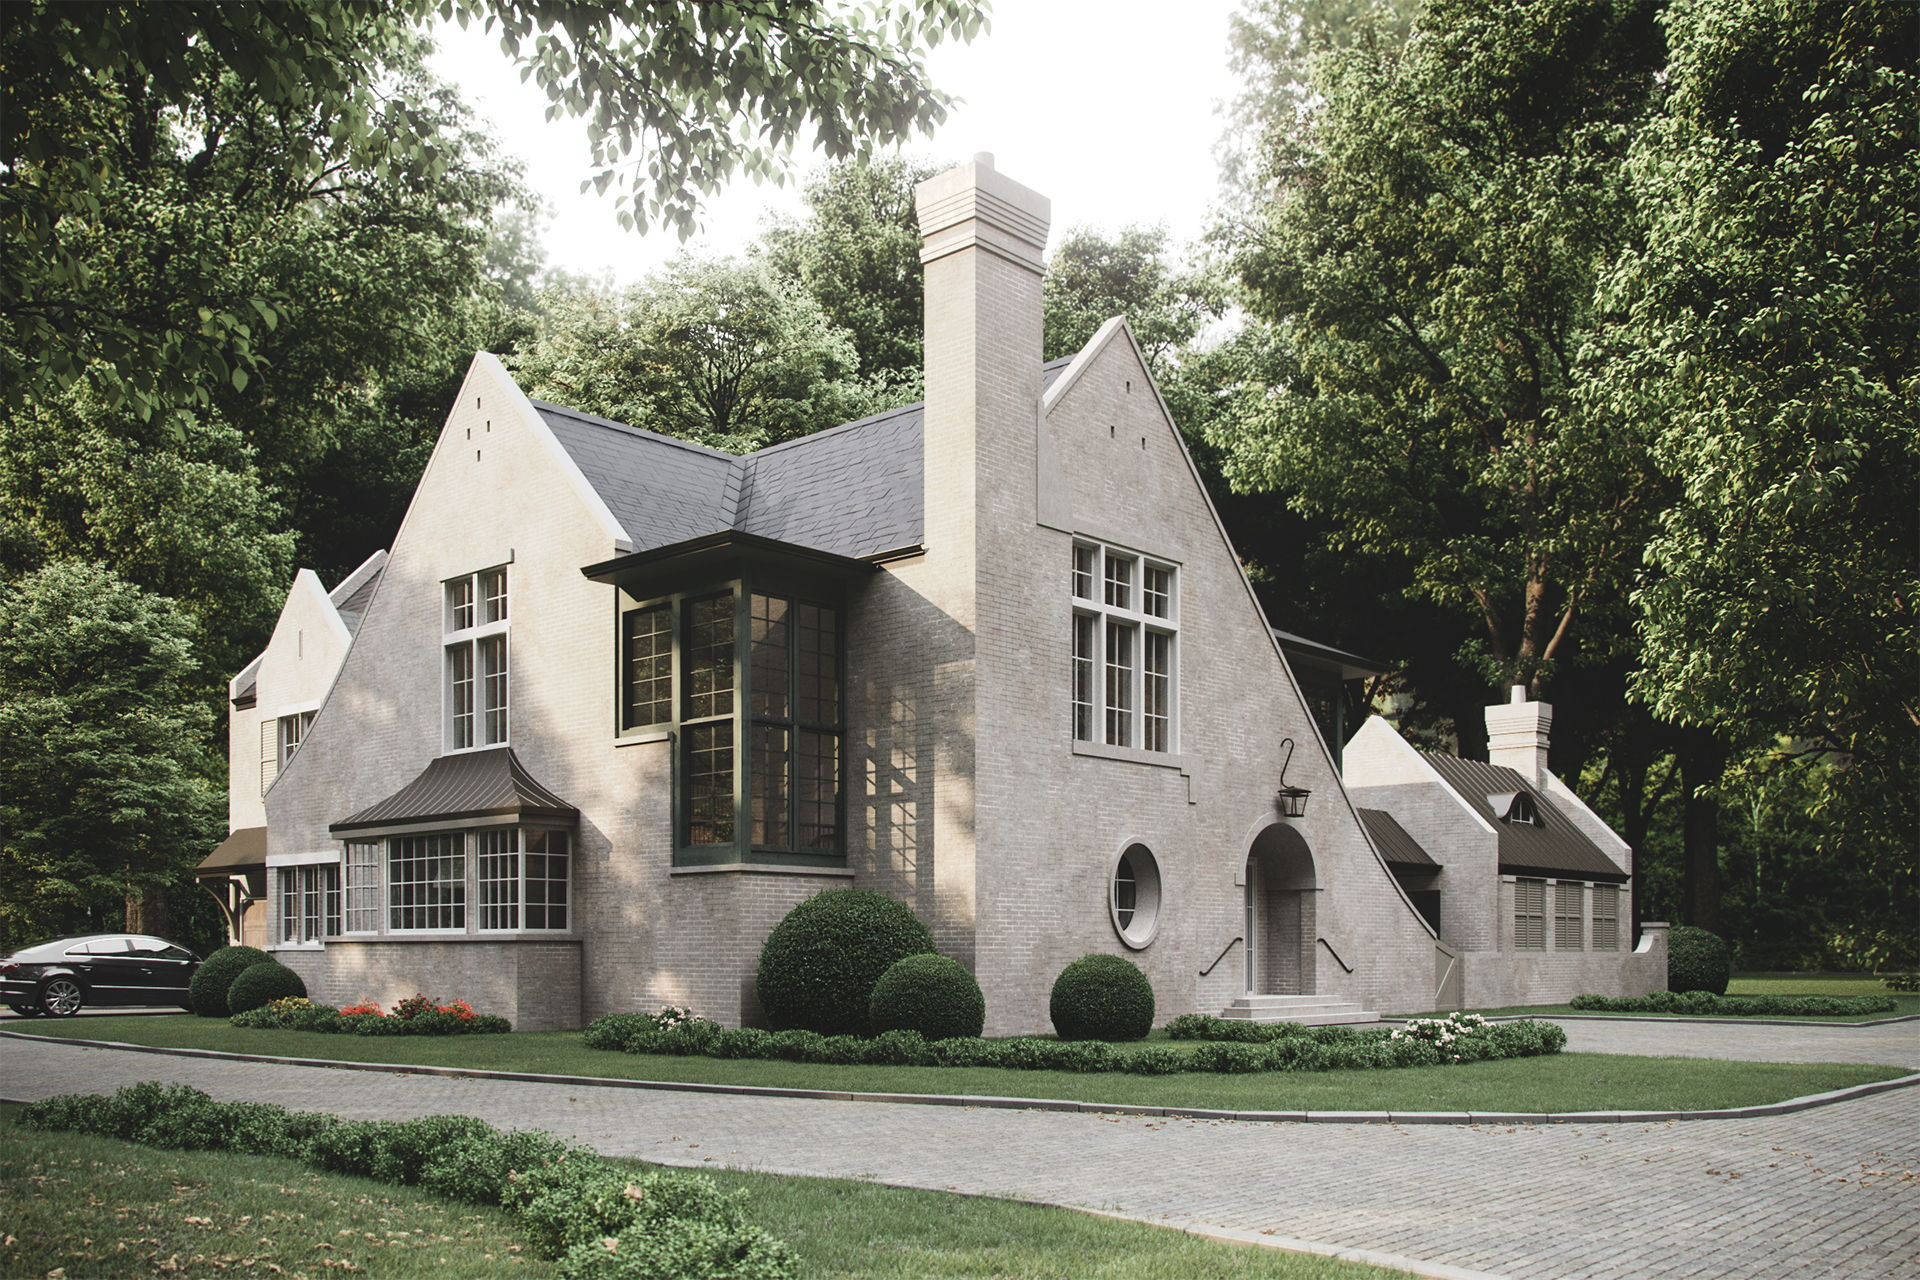 Exterior 3D Rendering Of a Cozy Cottage